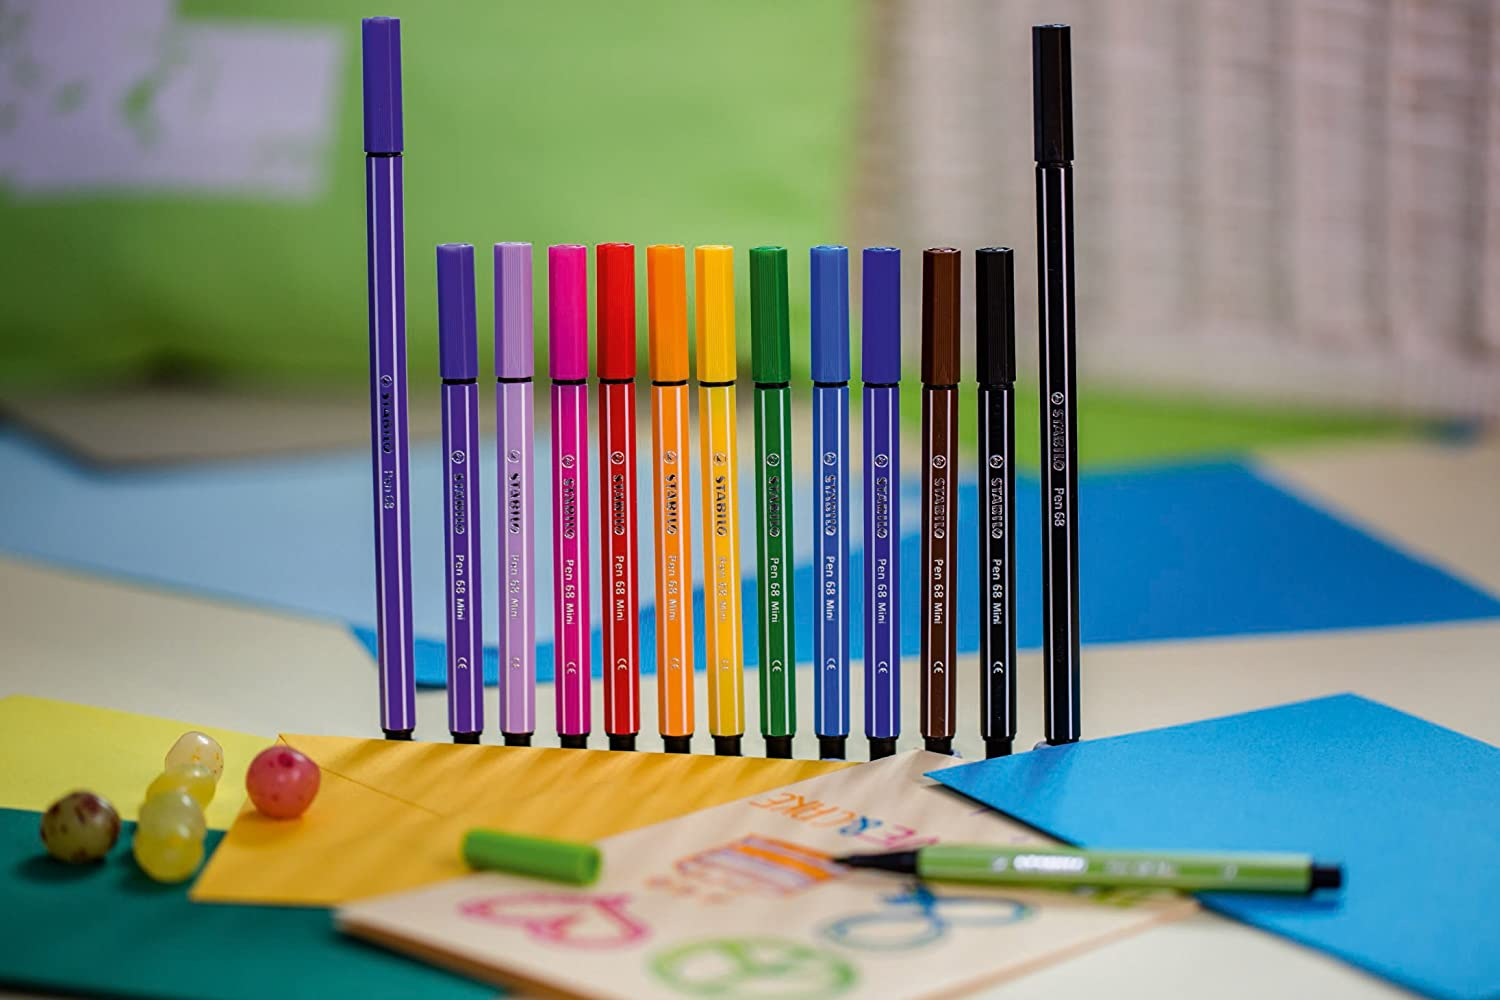 Amazon.com : STABILO Pen 68 Mini Sweet Colors Felt-Tip Pens ...